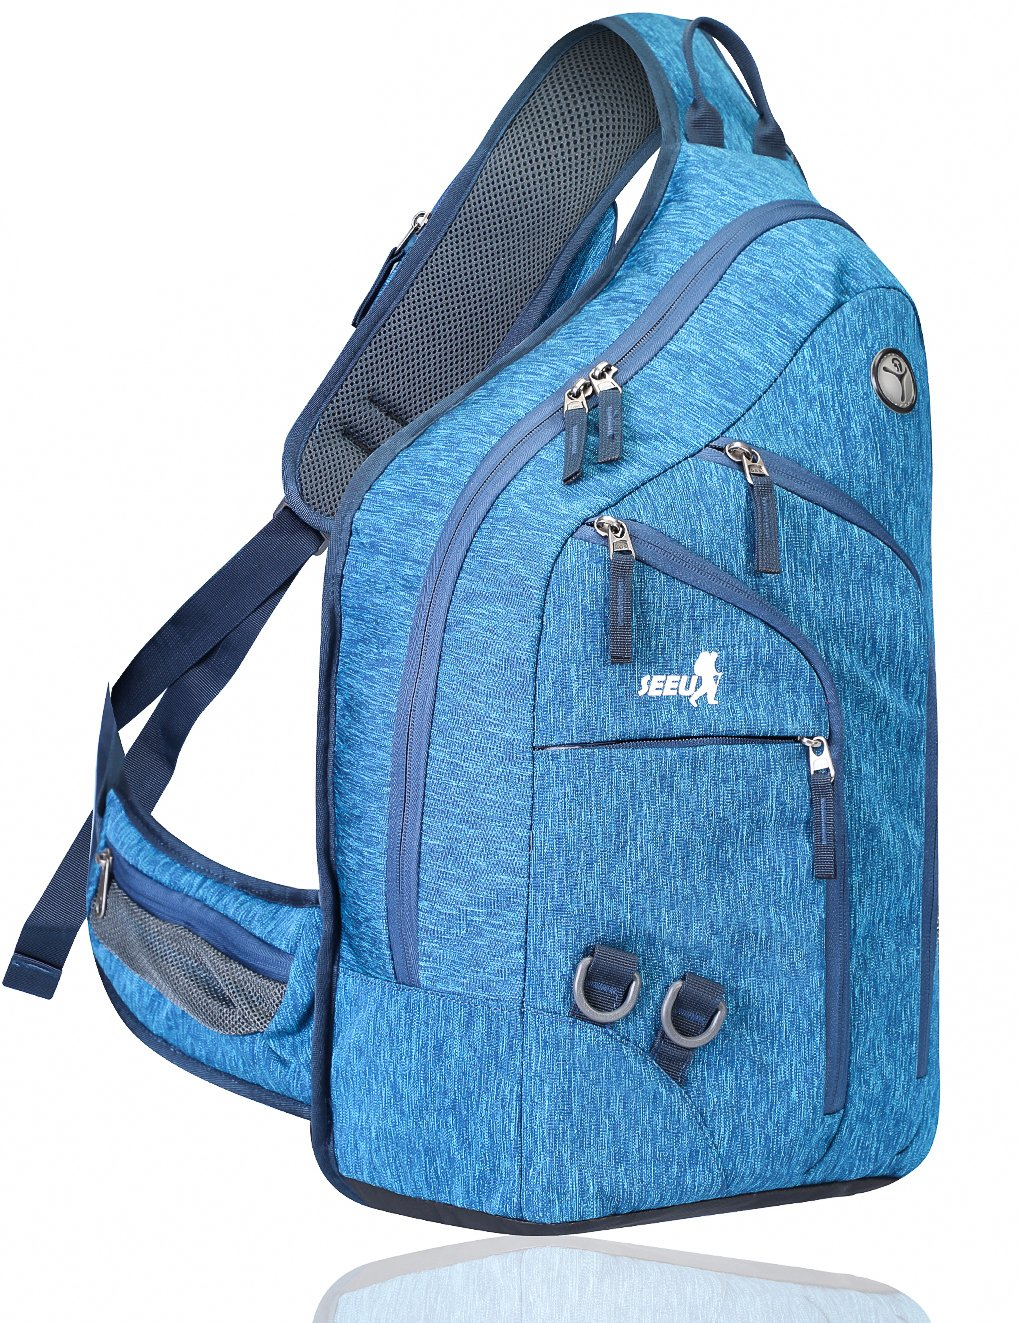 Plus Oversized Sling Backpack for Men, Double Layers One Strap Backpack rope Sling Bag 28L